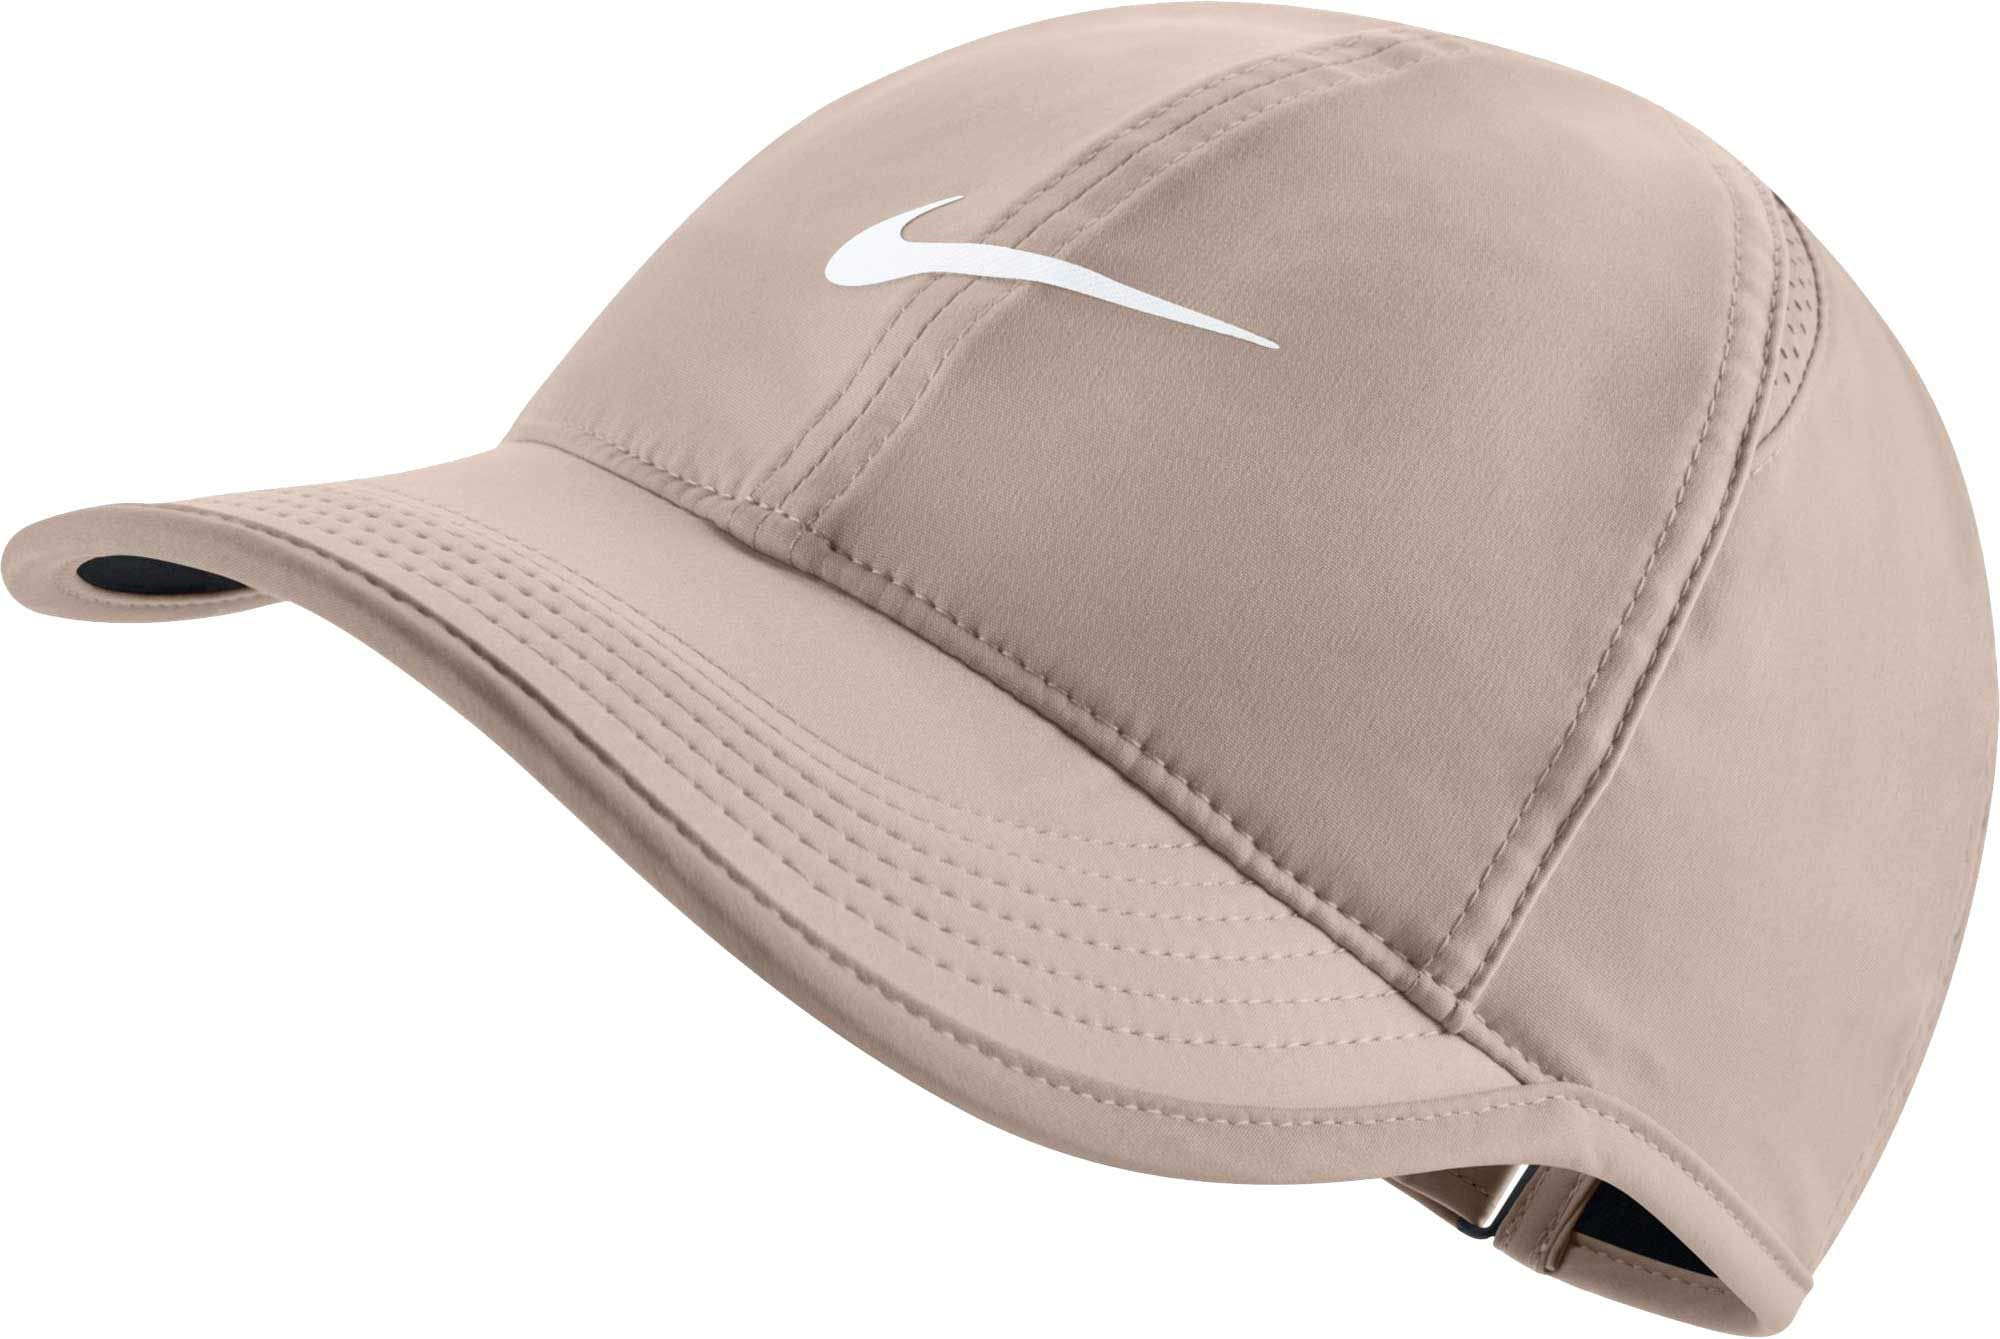 NIKE Women's Feather Light Adjustable Hat (Guava Ice)